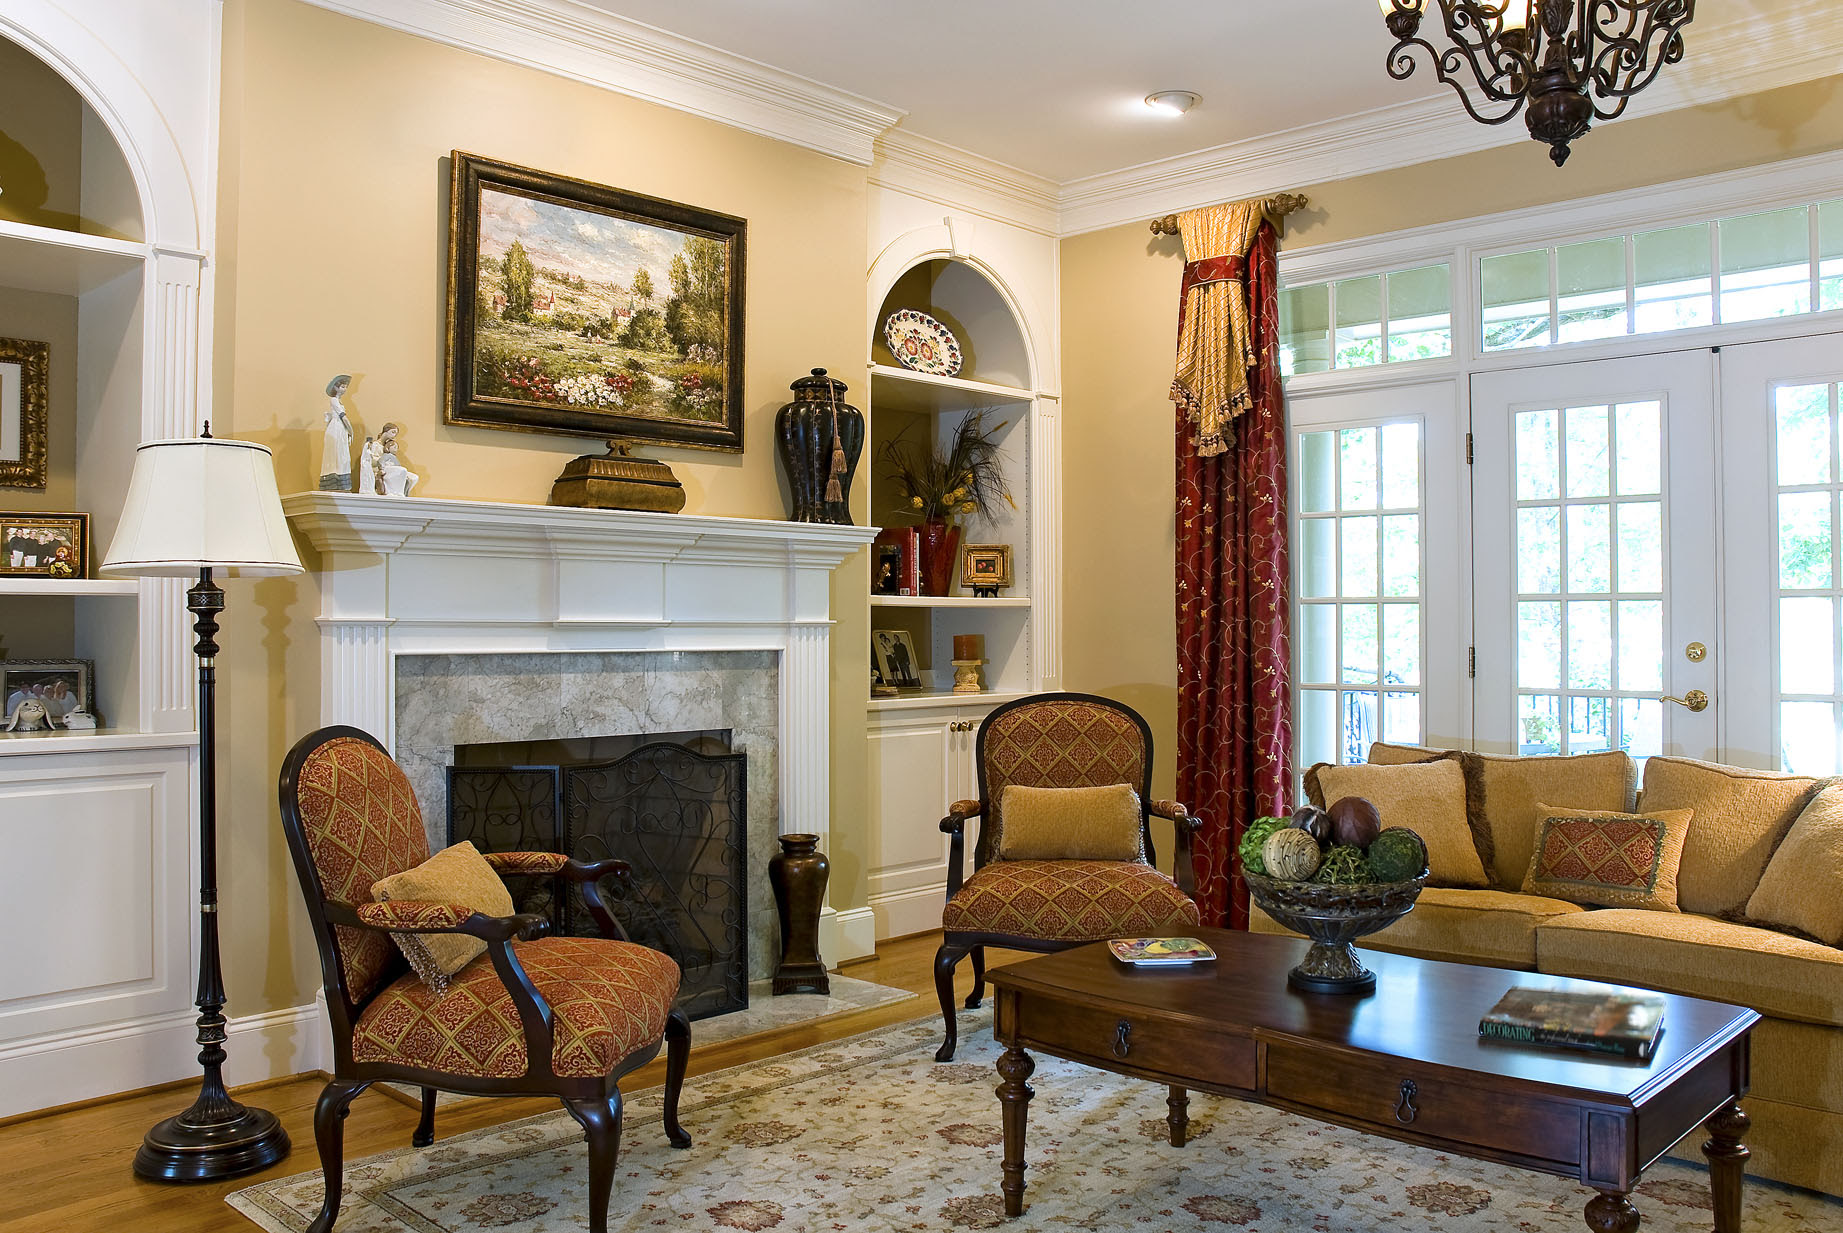 What's your Design Style? | Decorating Den Interiors Blog ...